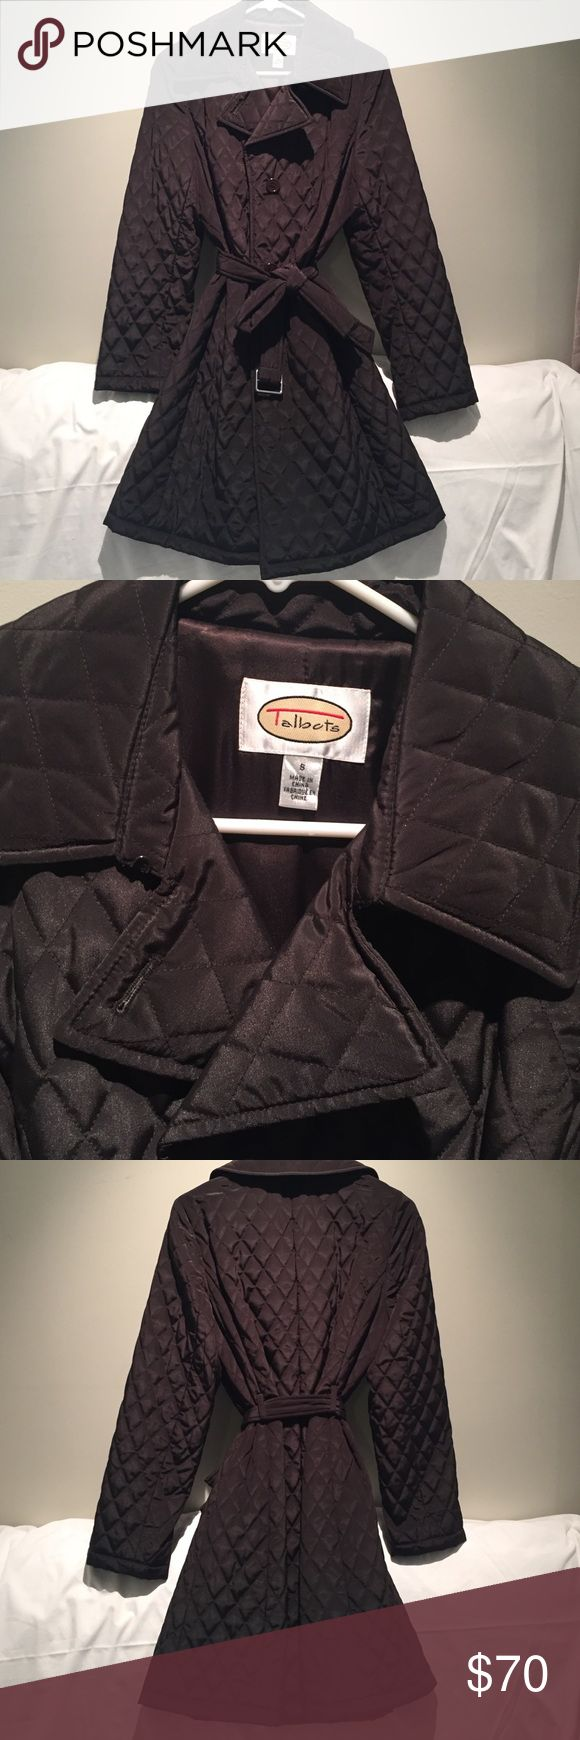 Talbots long brown fall/winter puffer jacket The jacket is warm and has a small amount of puff to it. I would consider it more of a fall/winter jacket because it is not super thick. Because it is not thick it is a nice thin silhouette Talbots Jackets & Coats Puffers